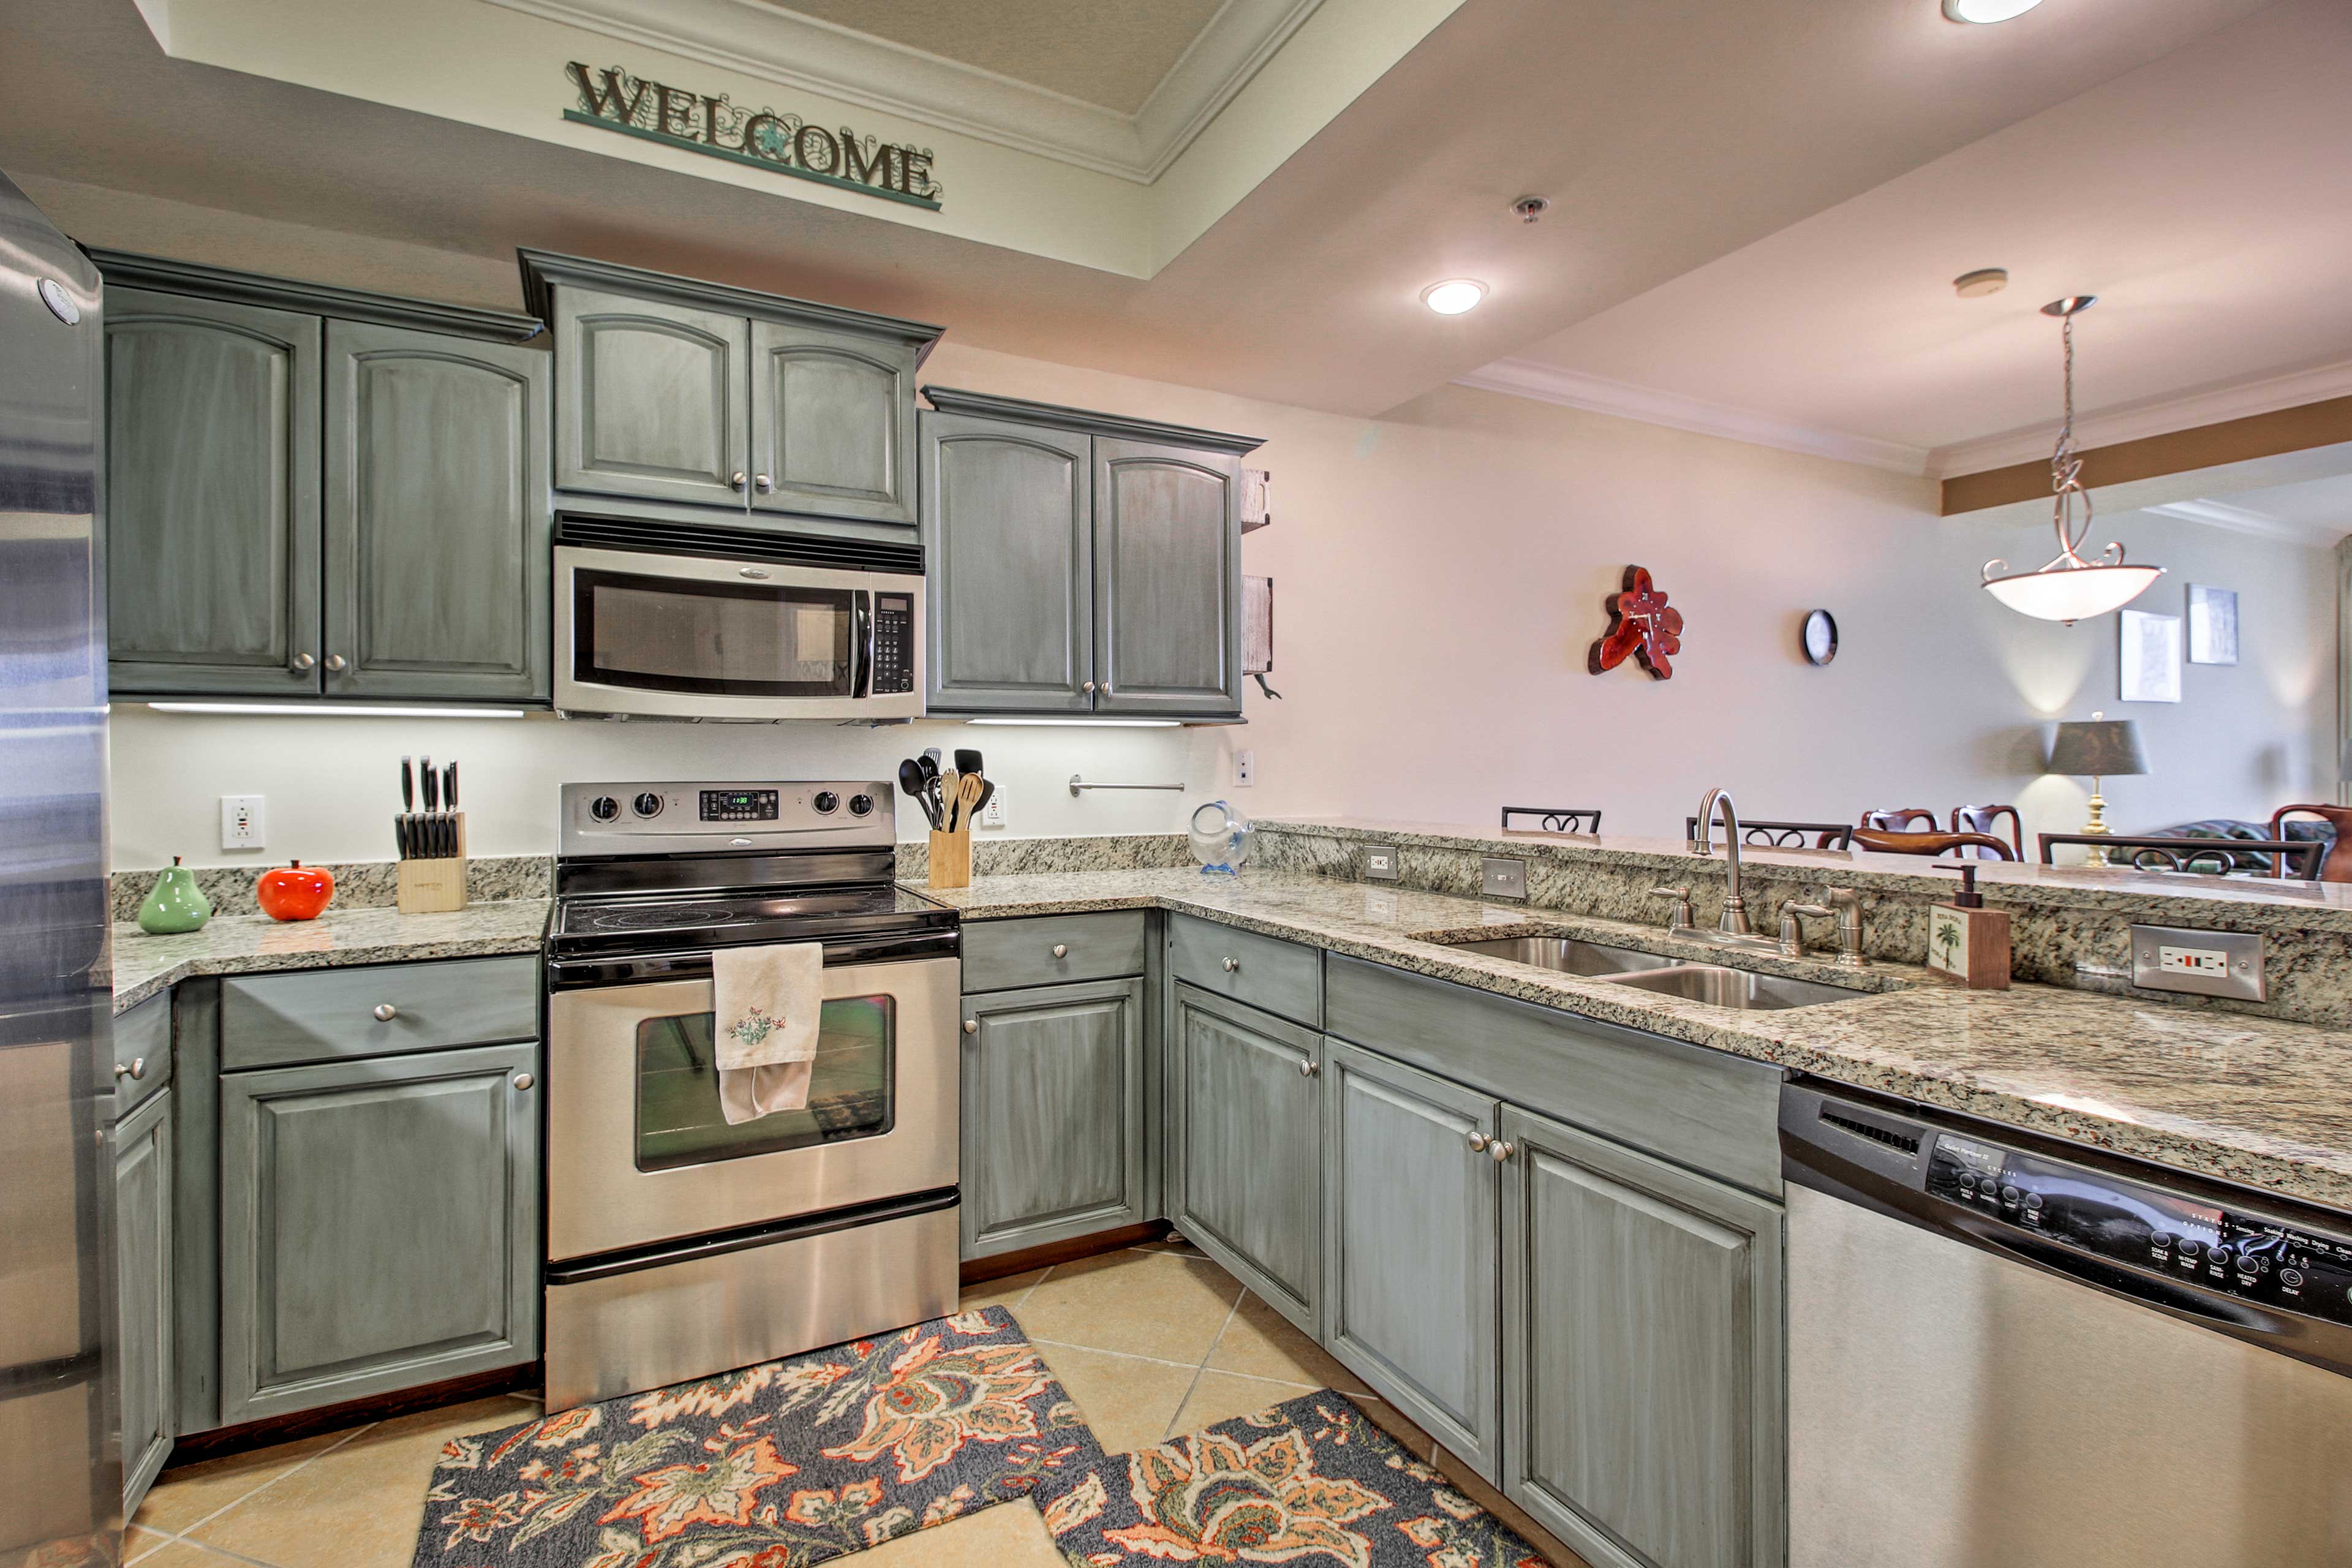 There's ample counter space for meal prep in the kitchen.